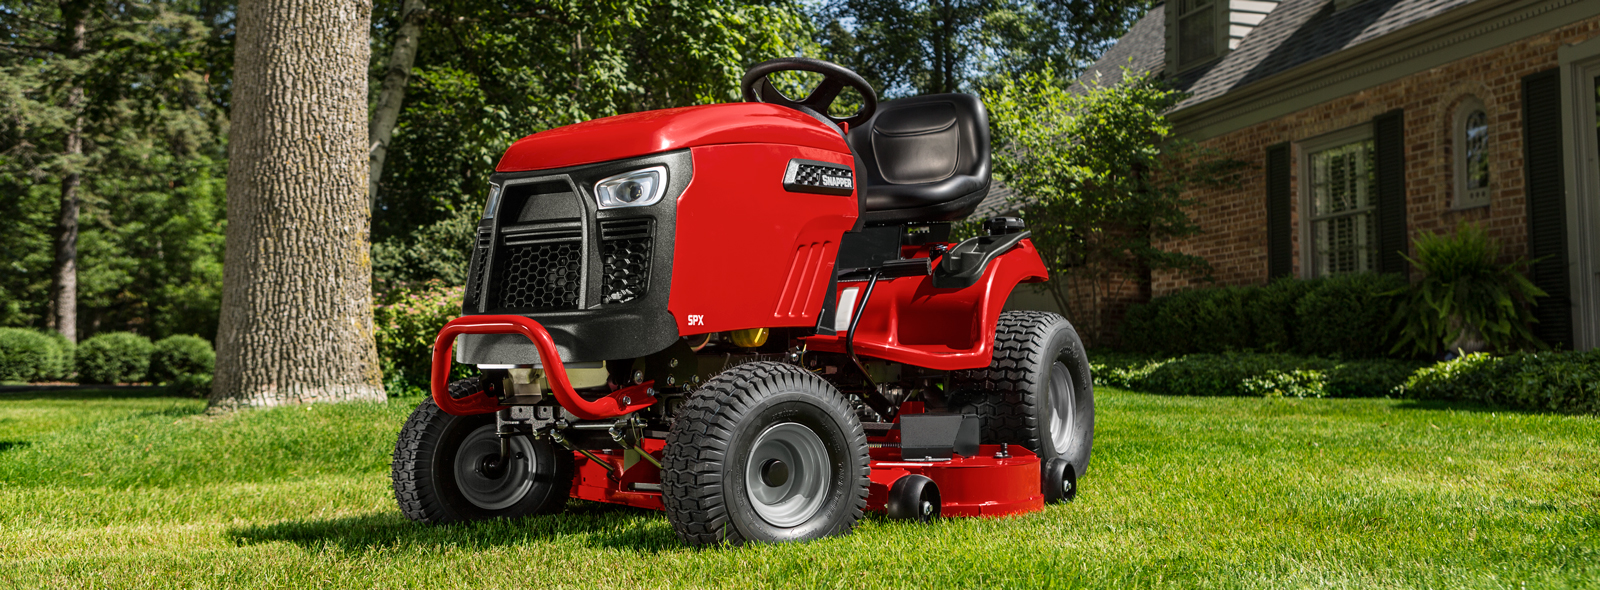 Snapper riding mower sitting idle in front of a house.